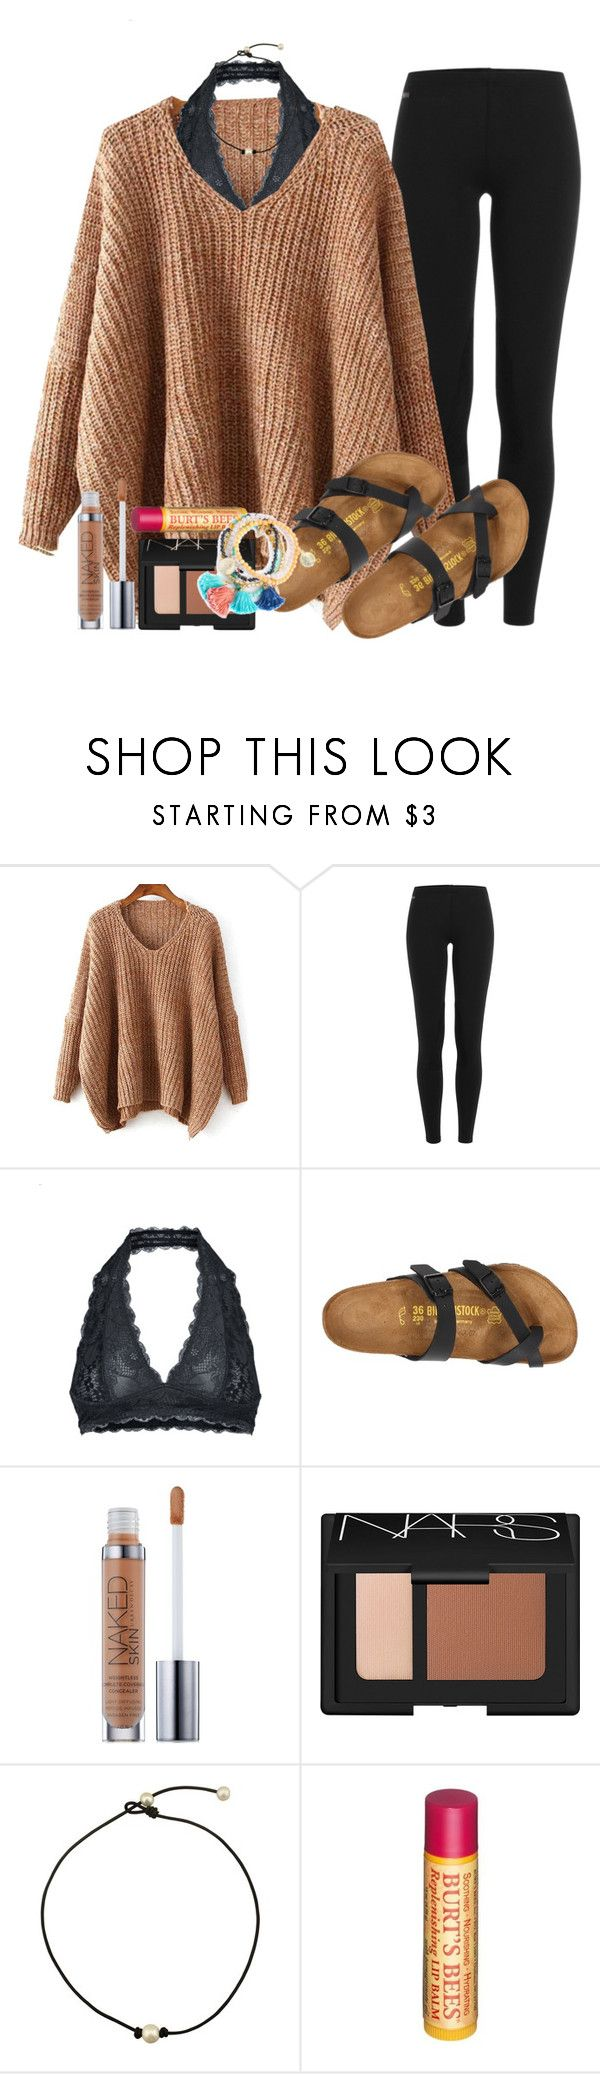 """""""when you wanna wear sweaters cause it's fall but it's 70° out"""" by mgally29 ❤ liked on Polyvore featuring Polo Ralph Lauren, Free People, Birkenstock, Urban Decay, NARS Cosmetics and Burt's Bees"""